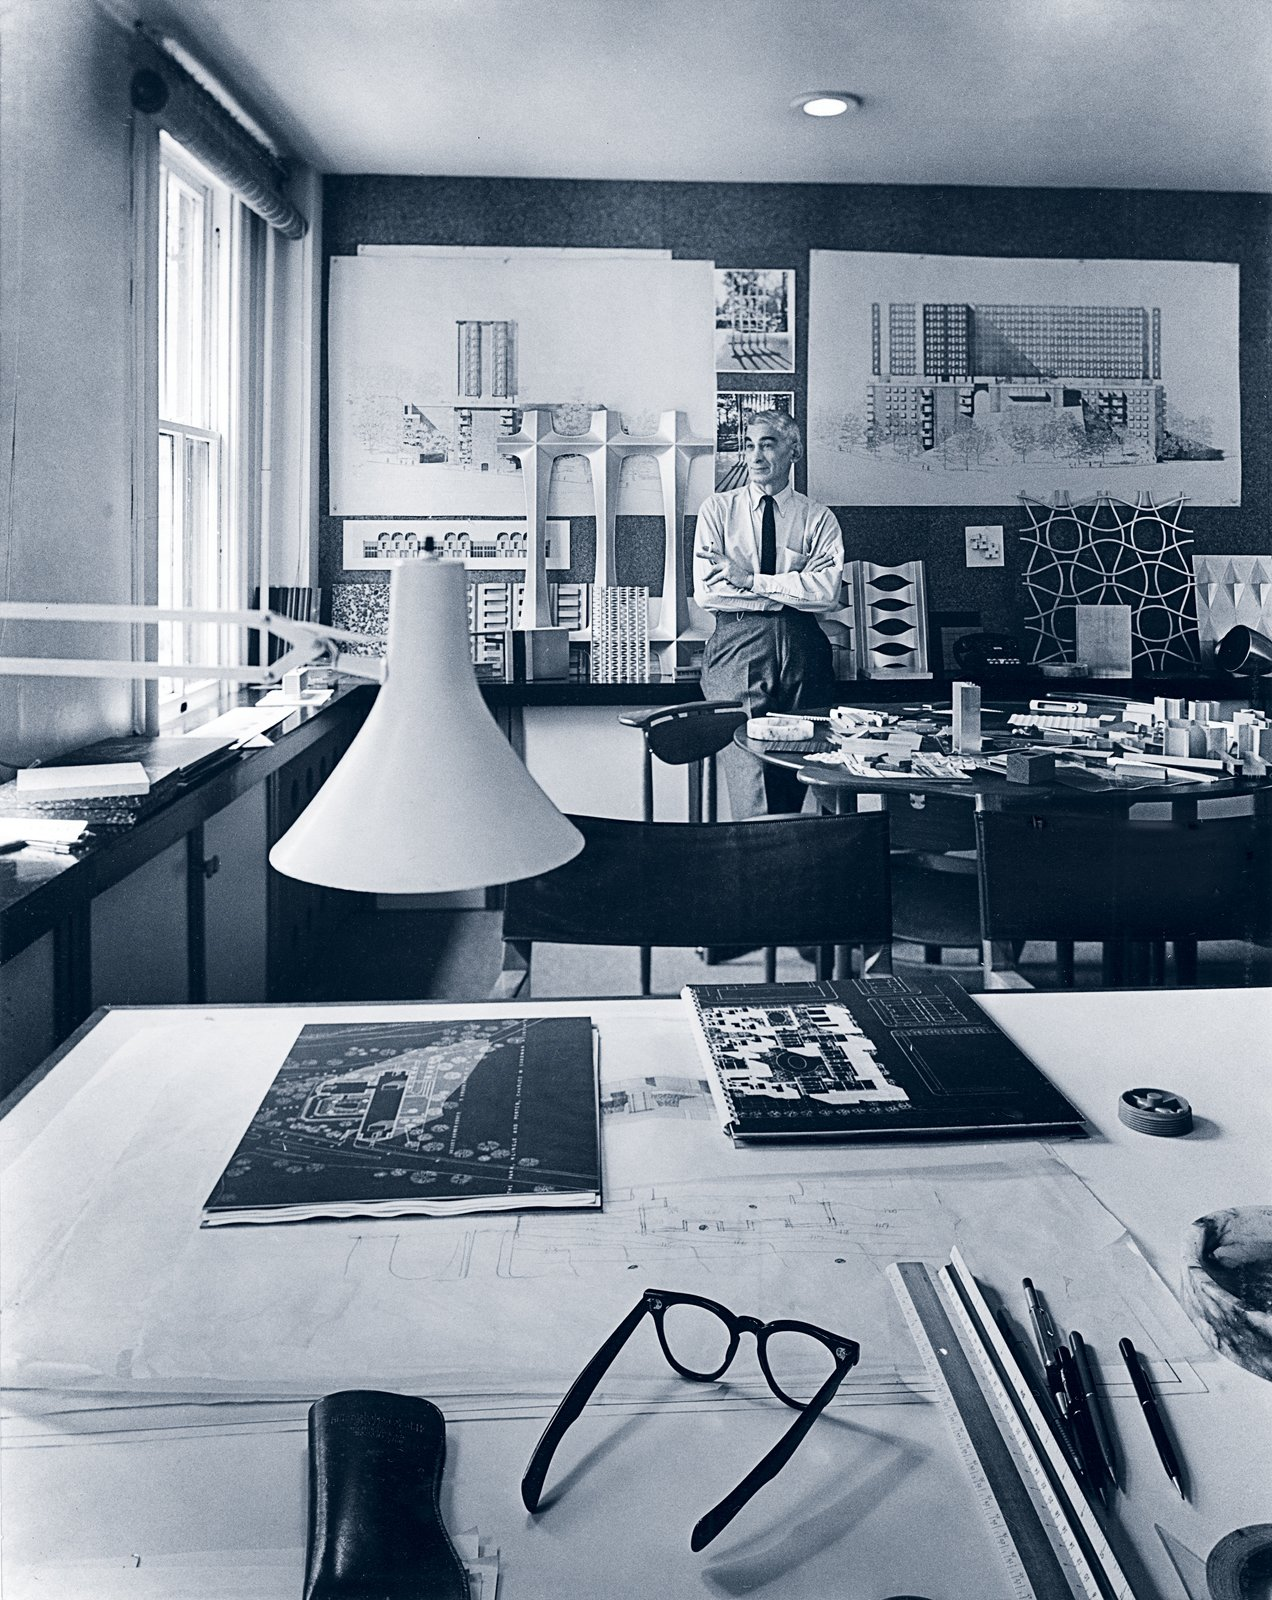 Charles Goodman in his Washington, D.C. office during the 1950s.  Photo 2 of 6 in Community of Vision